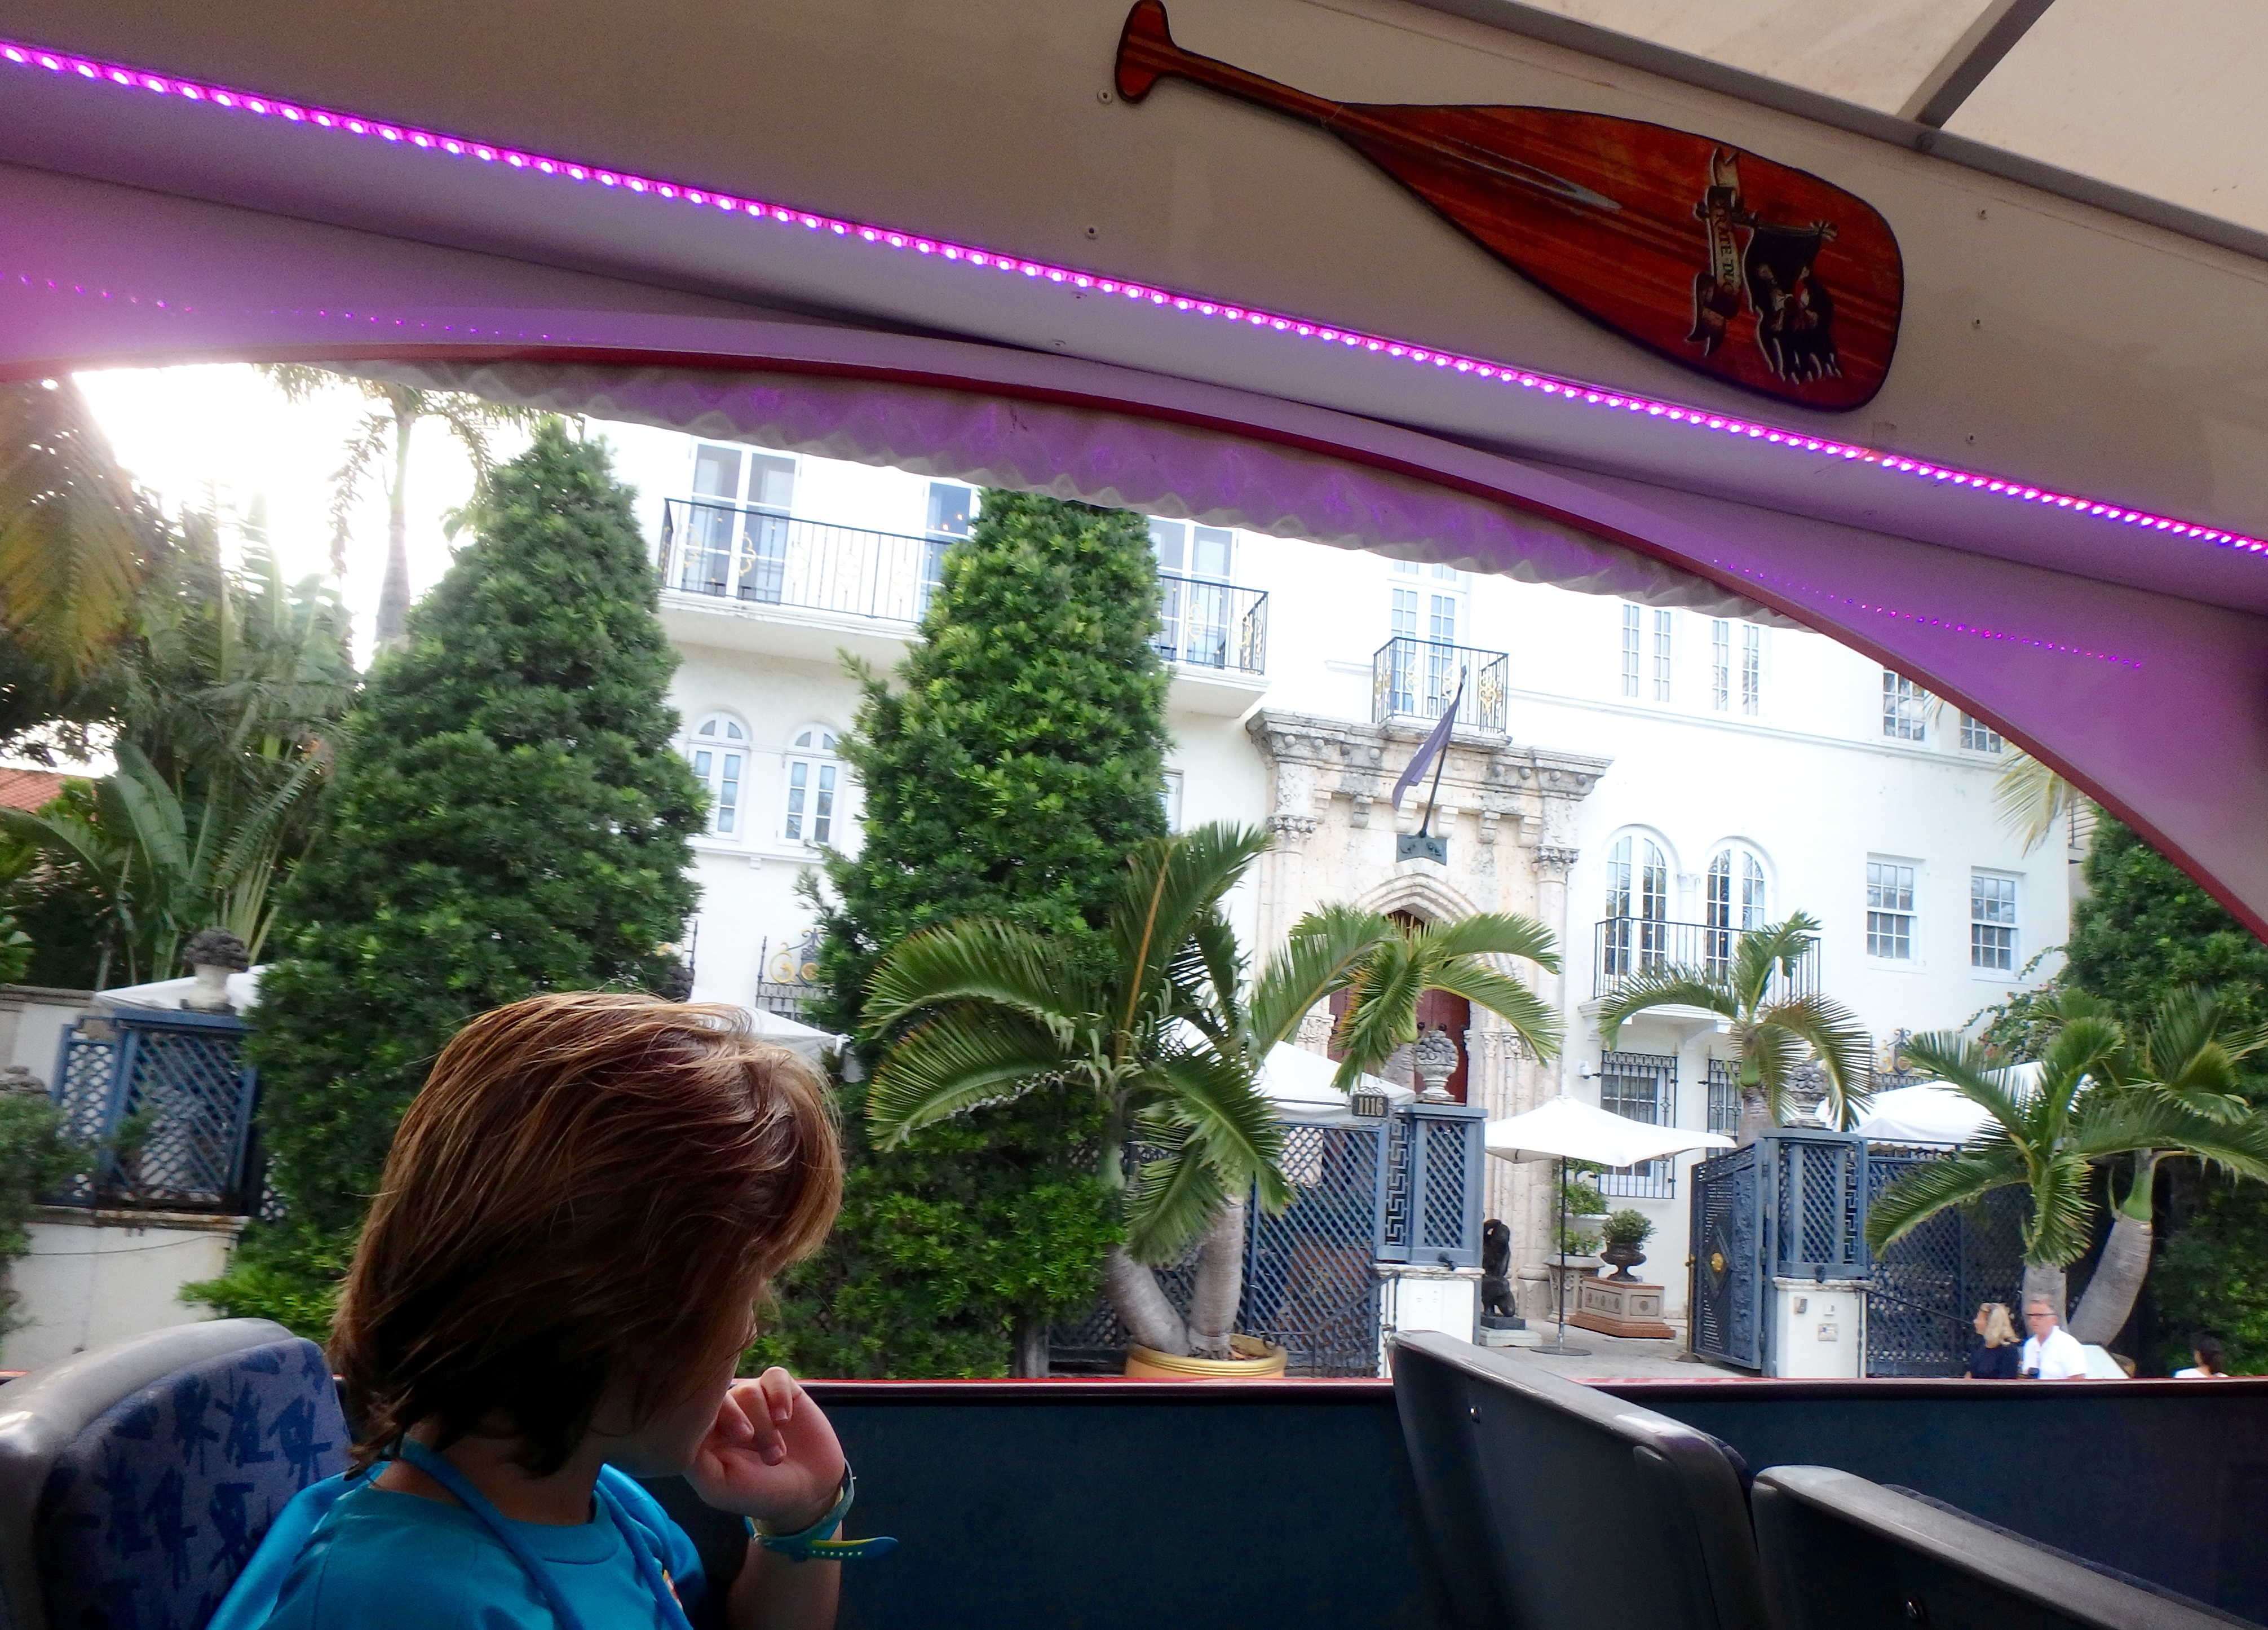 ZZ Ninja Kid: Planes, Trains, Boats & Autos #12 Amphibious Pirate Bus/Boat tour Miami - Gianni Versace Mansion